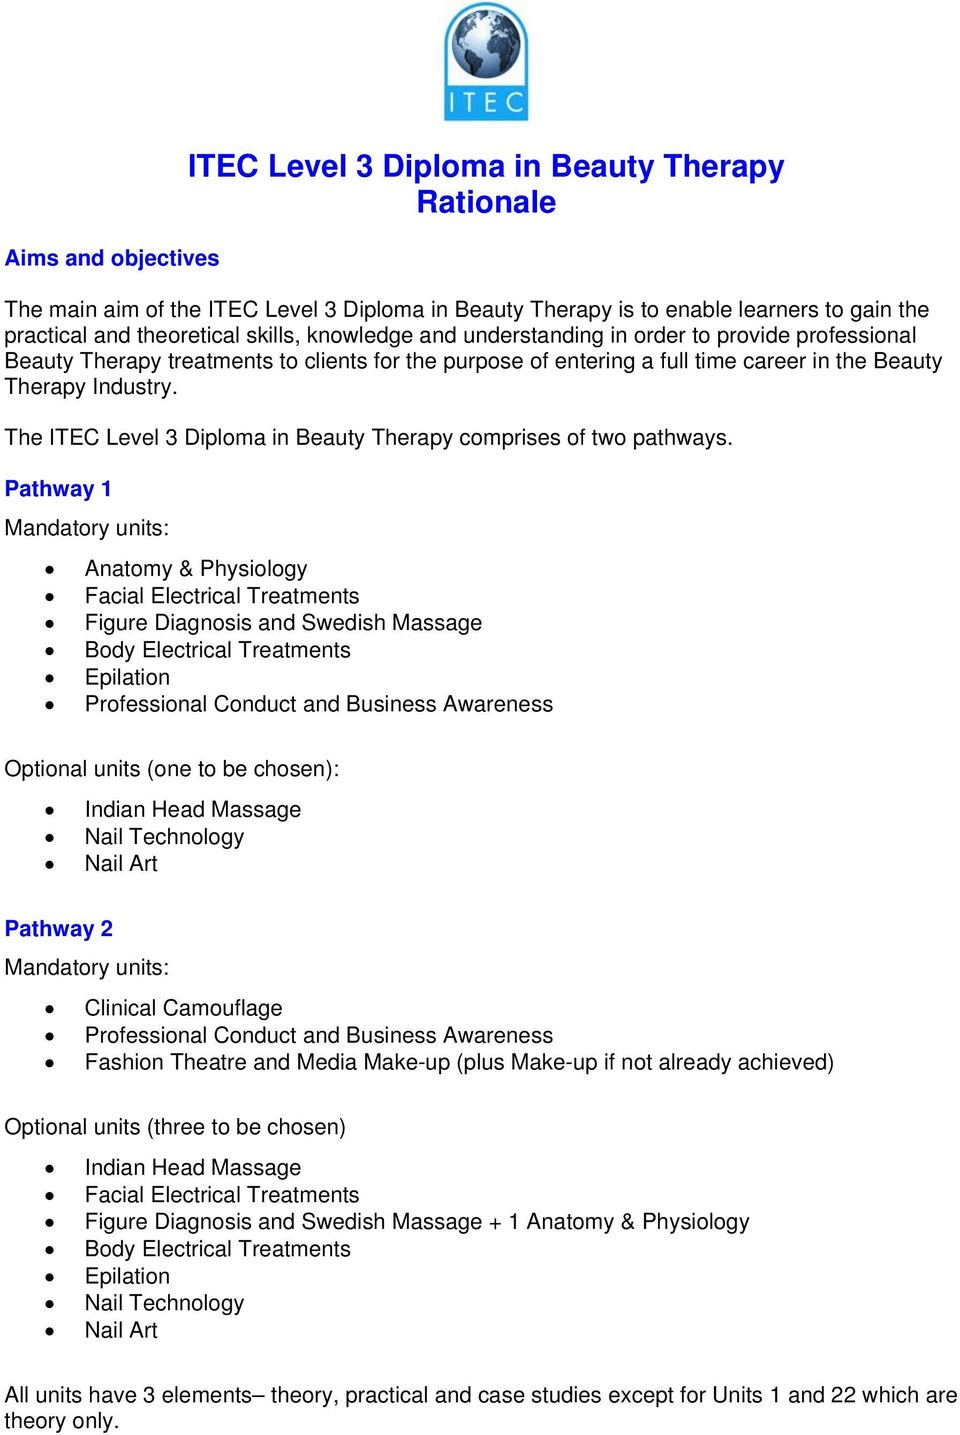 Itec Level 3 Diploma In Beauty Therapy Rationale Pdf Free Download